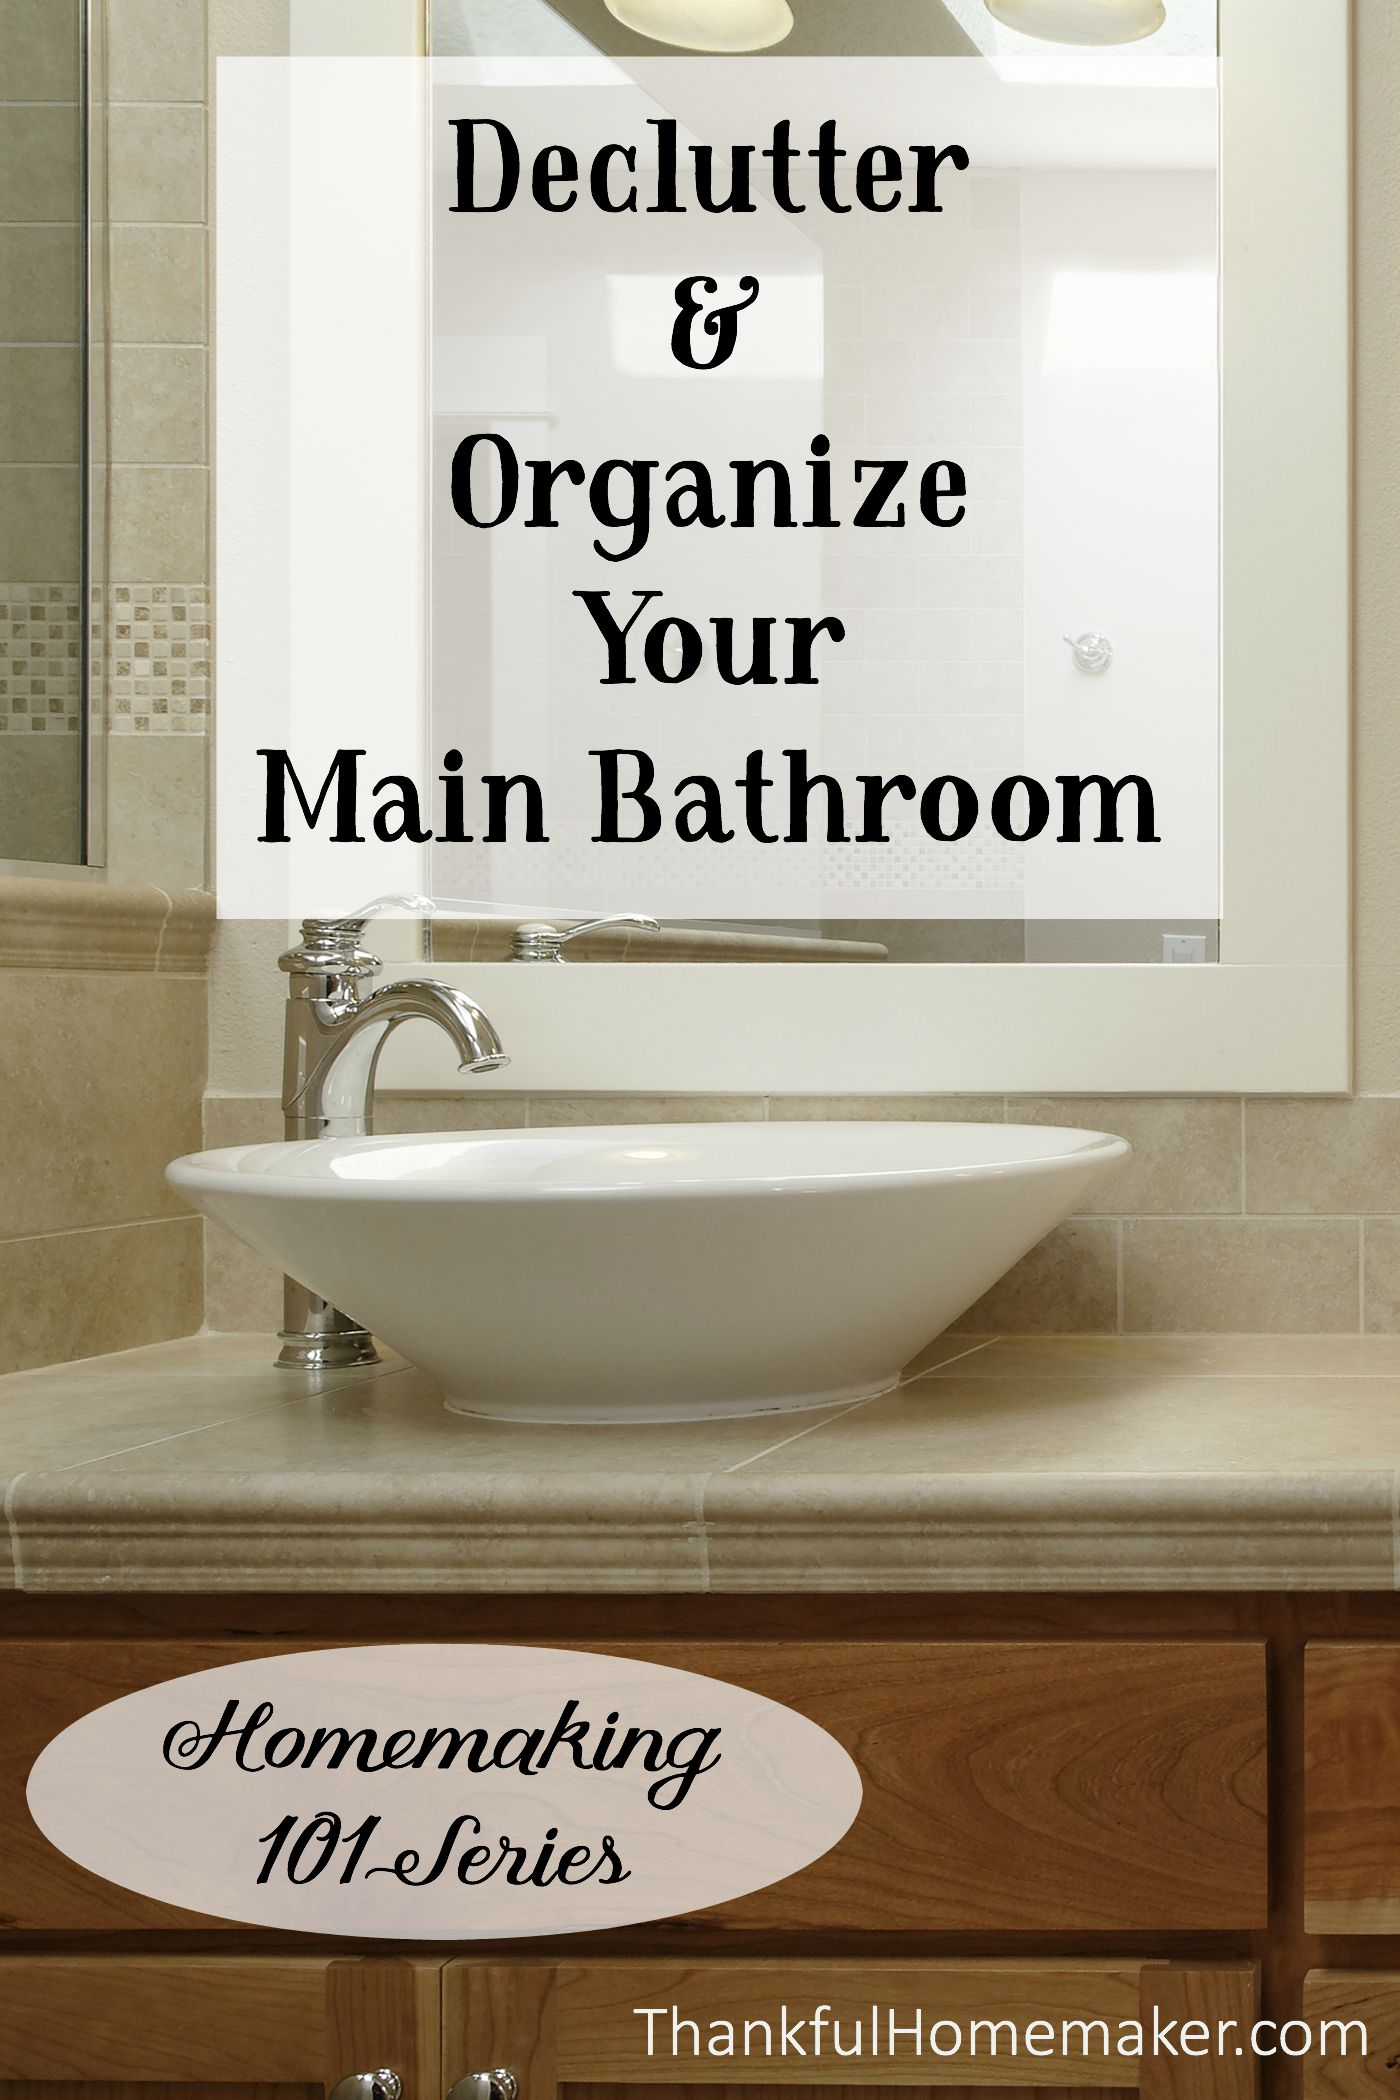 Homemaking 101 Series Declutter And Organize Your Main